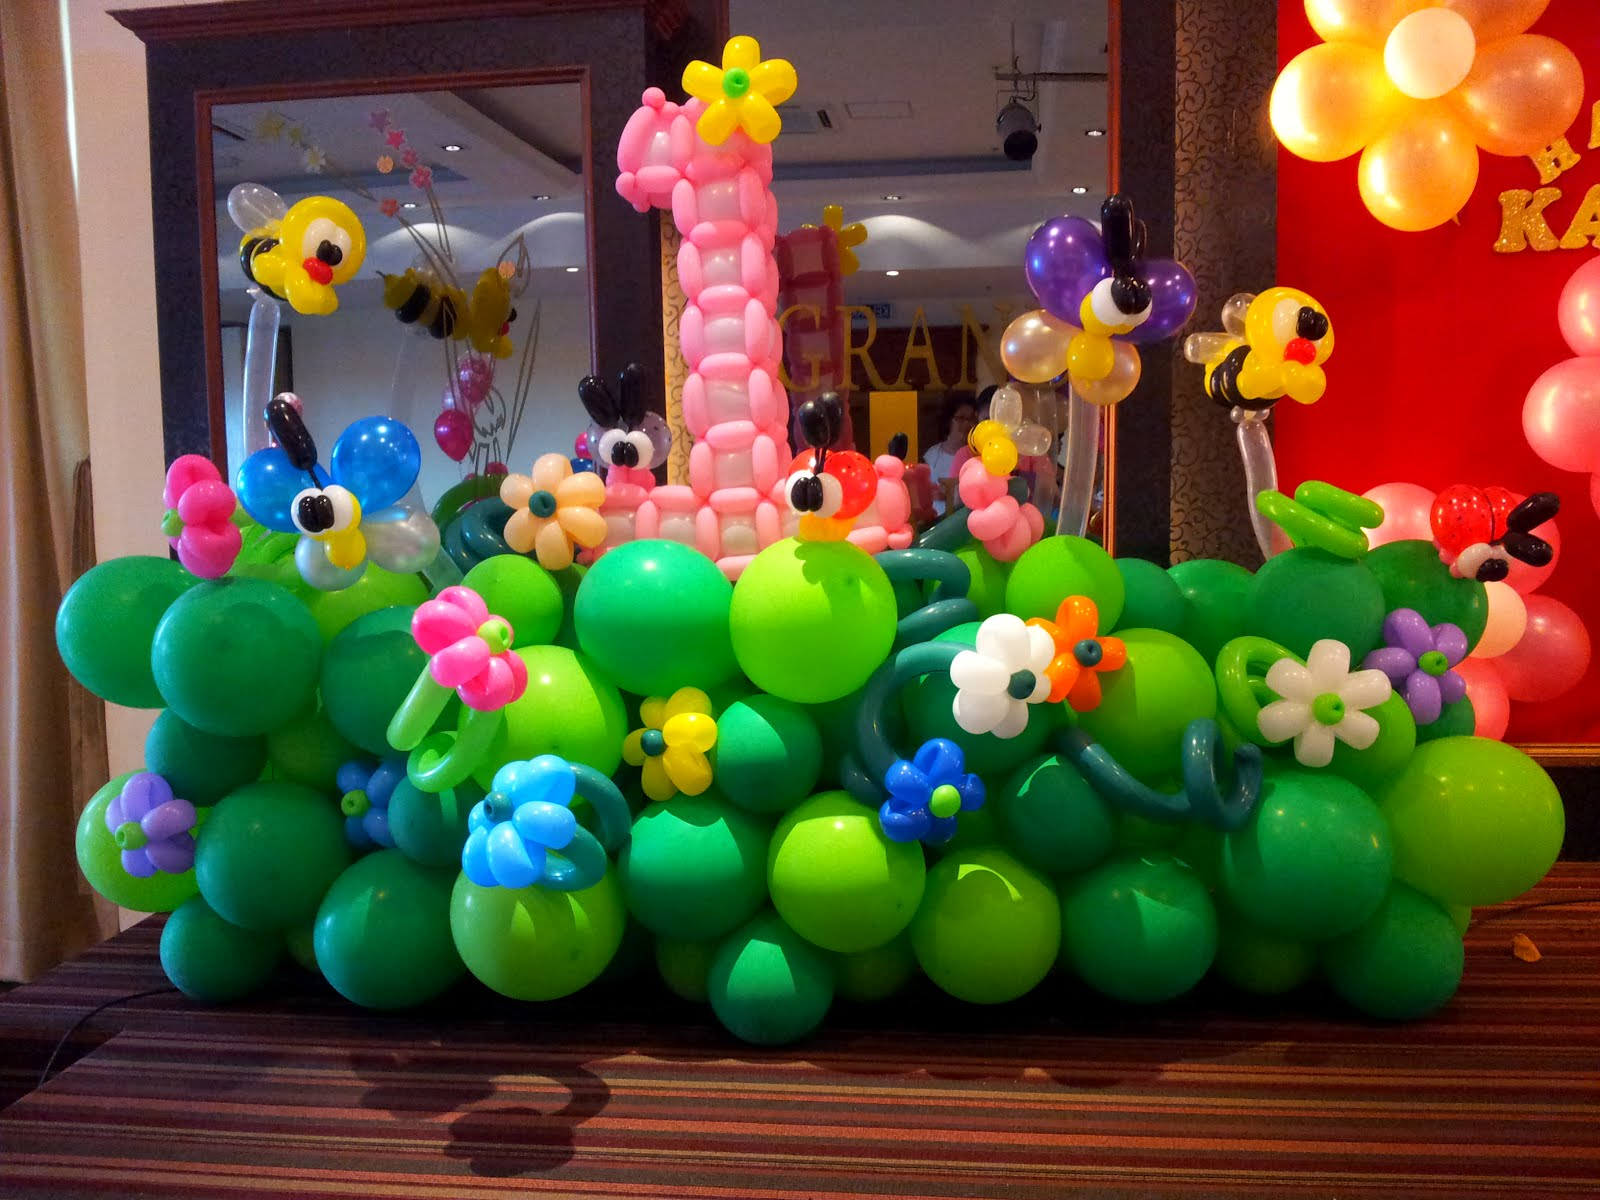 Balloon decoration for birthday party party favors ideas for B day party decoration ideas